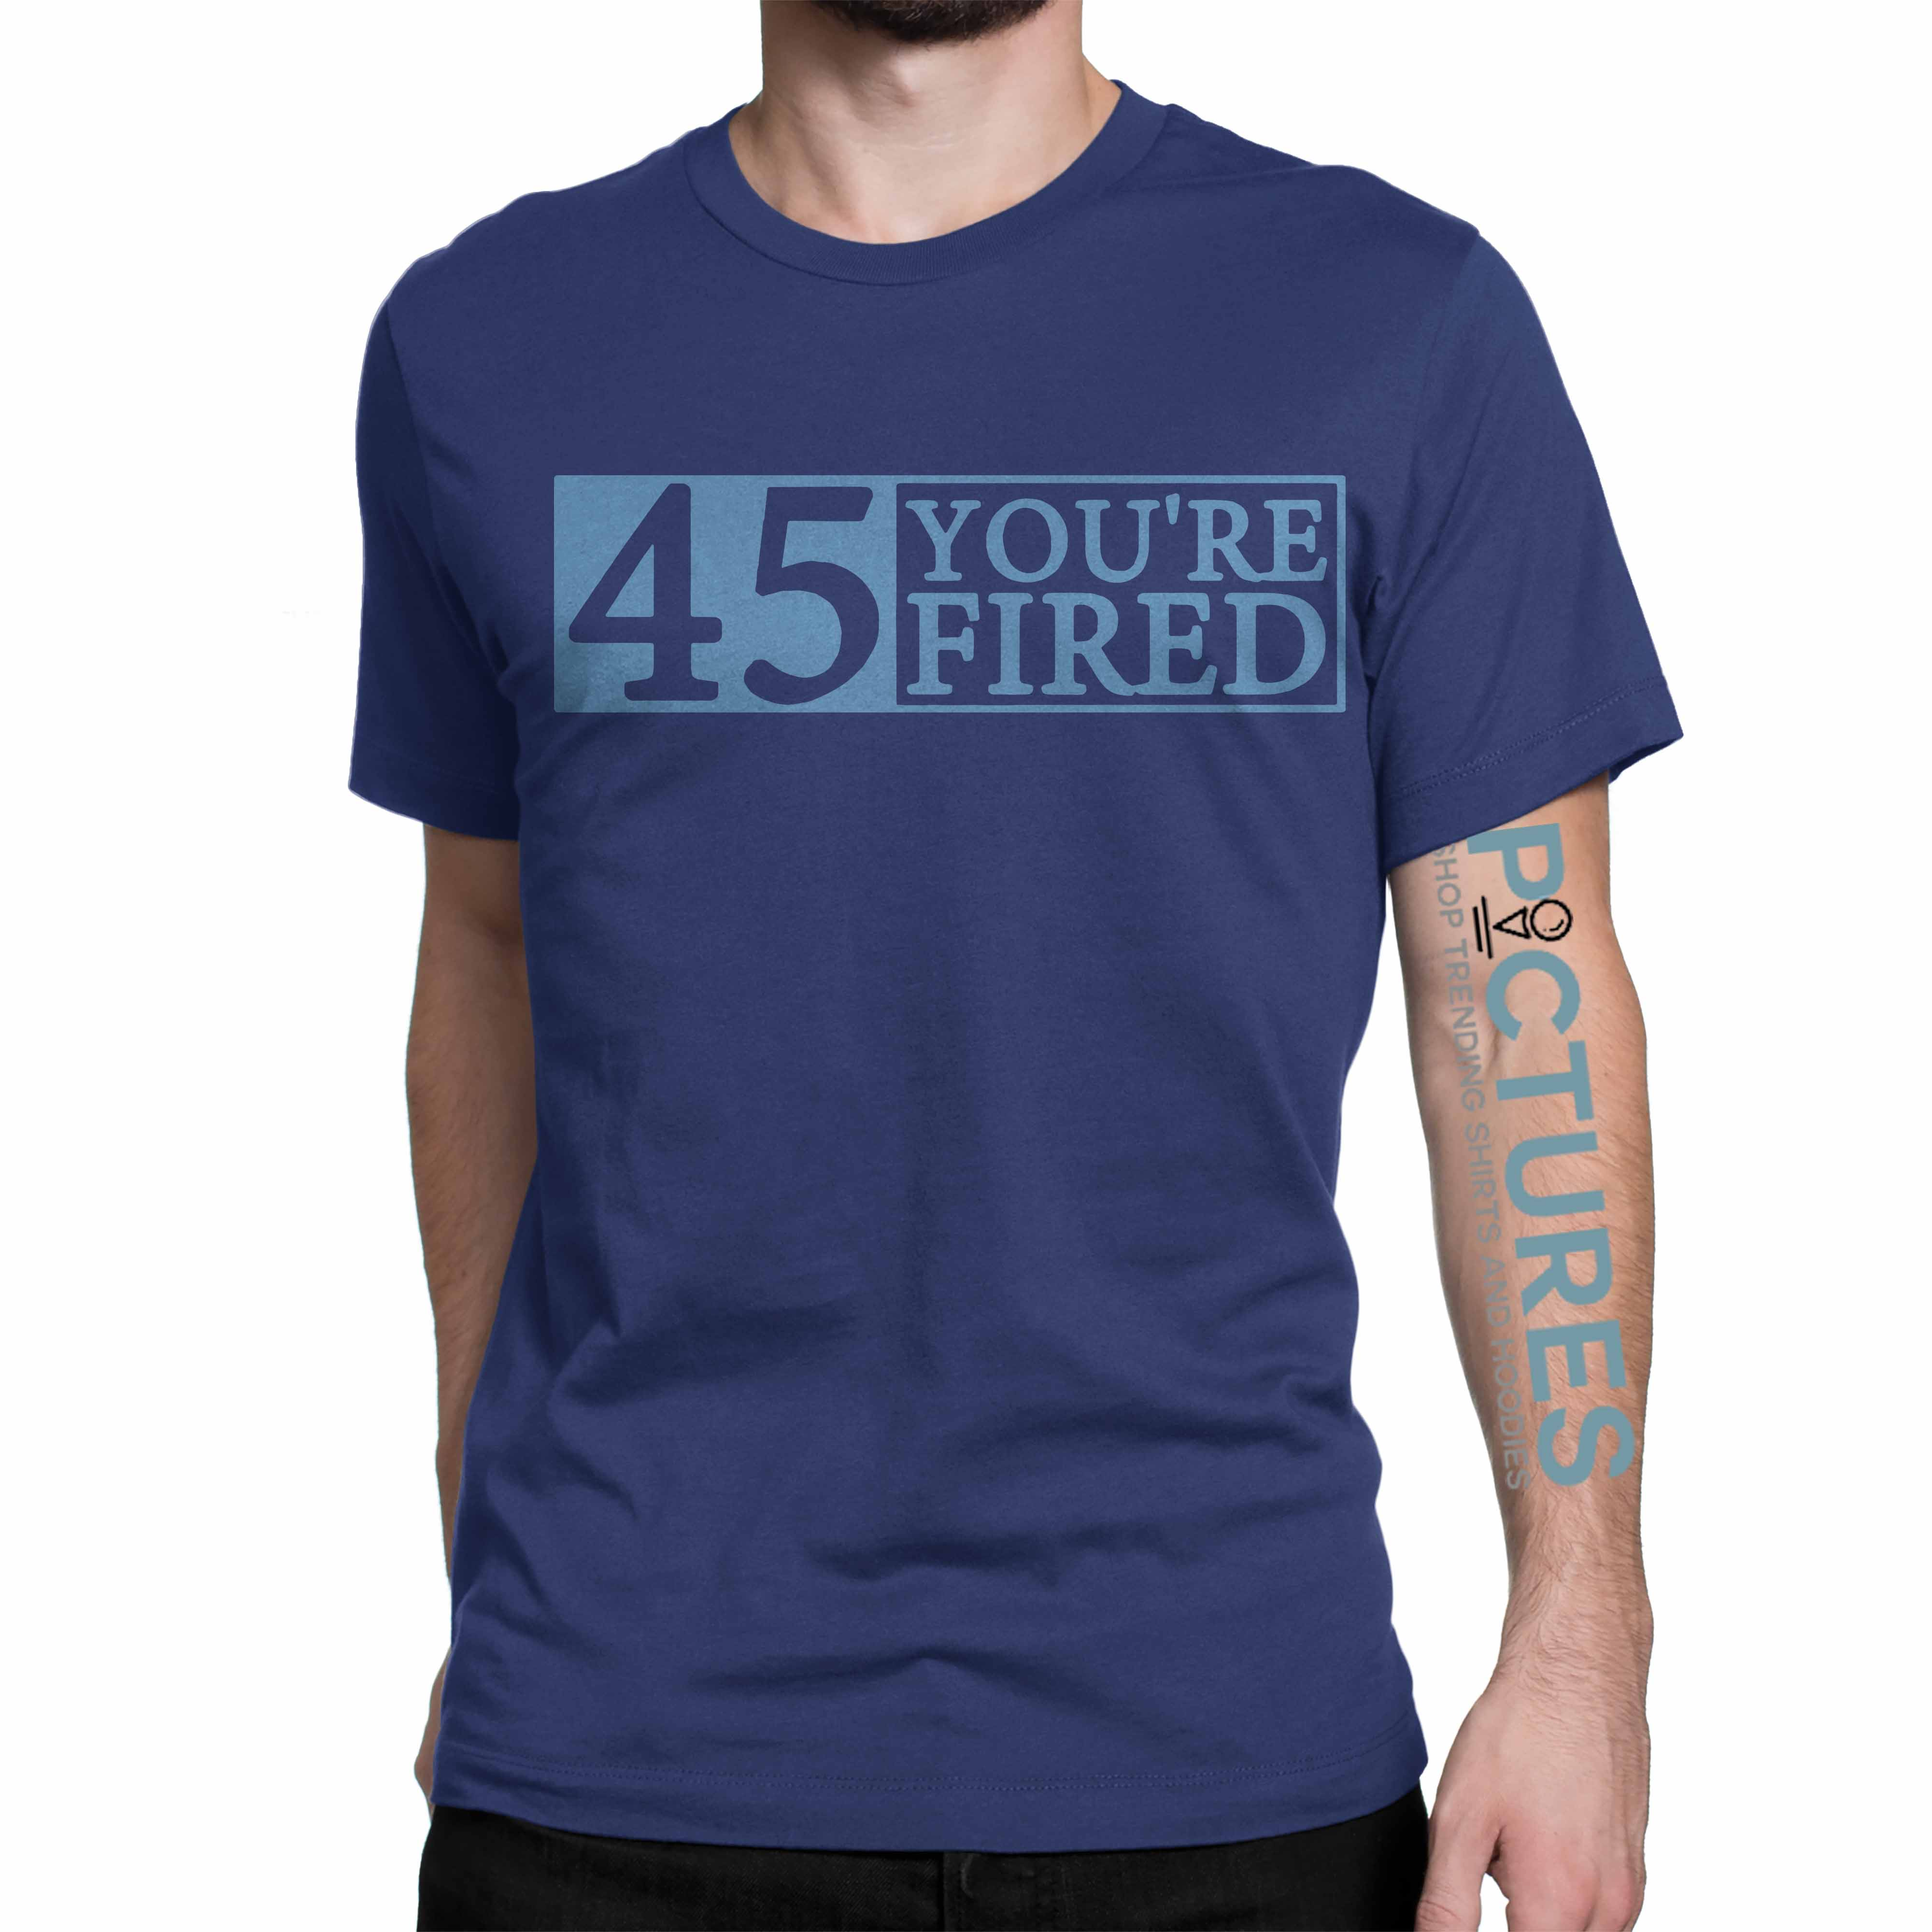 Official You're fired Impeach 45 shirt